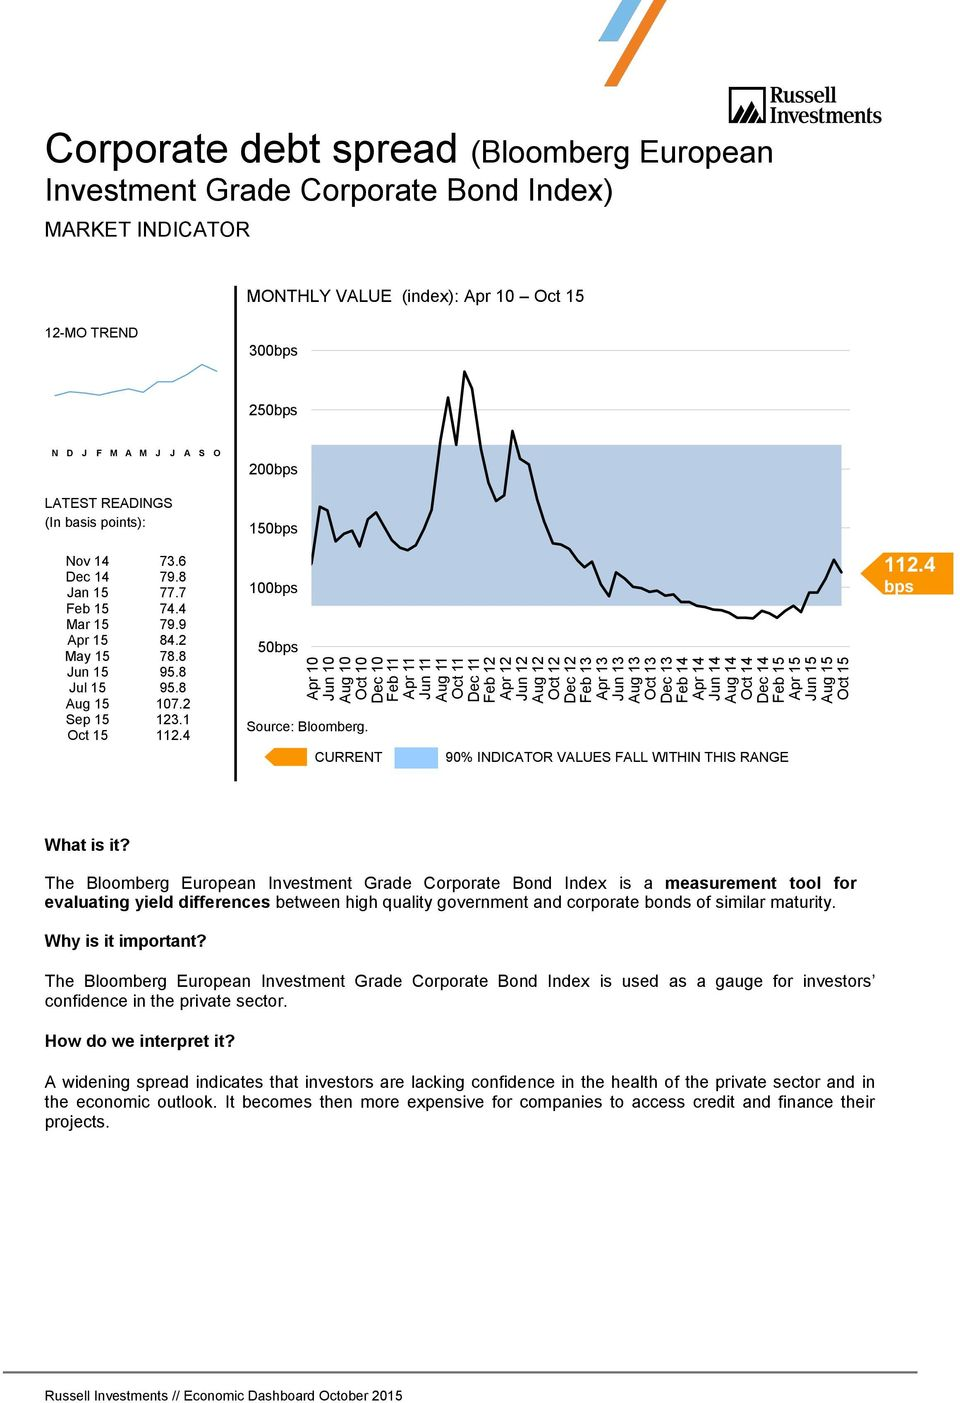 M J J A S O (In basis points): Nov 14 73.6 Dec 14 79.8 Jan 15 77.7 Feb 15 74.4 Mar 15 79.9 Apr 15 84.2 May 15 78.8 Jun 15 95.8 Jul 15 95.8 Aug 15 107.2 Sep 15 123.1 Oct 15 112.